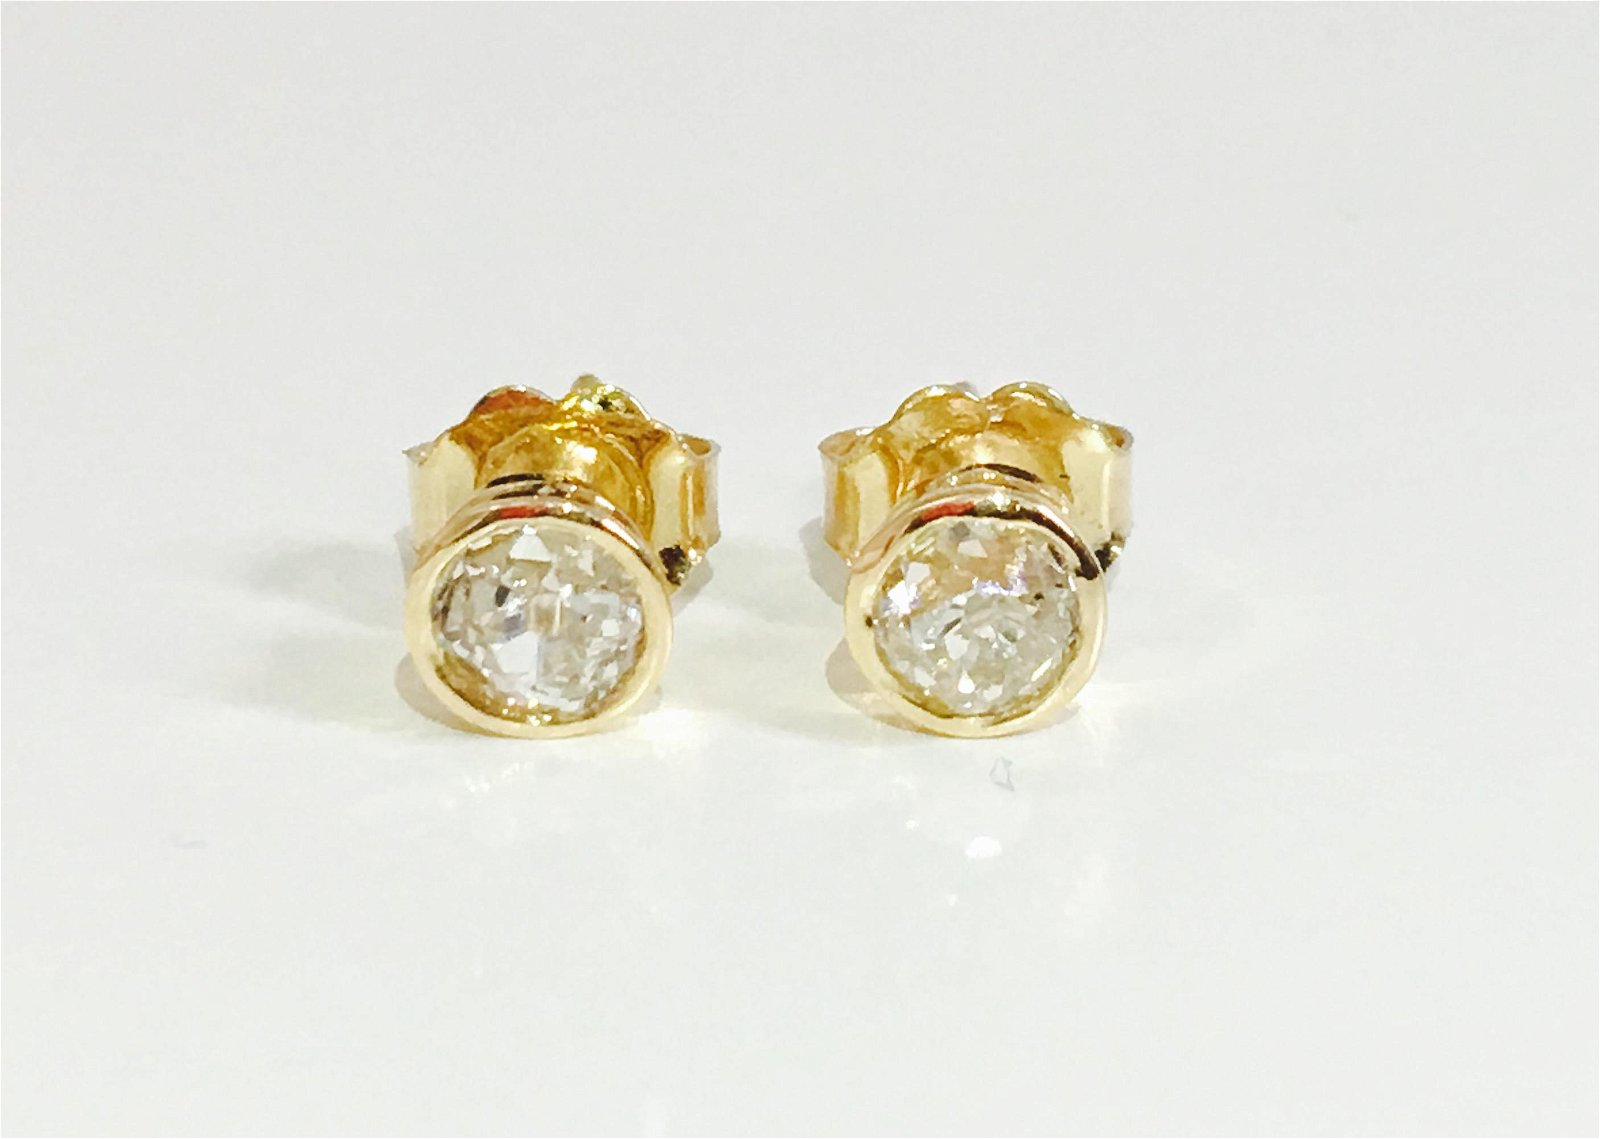 14k yellow gold and old mine cut diamond earrings studs